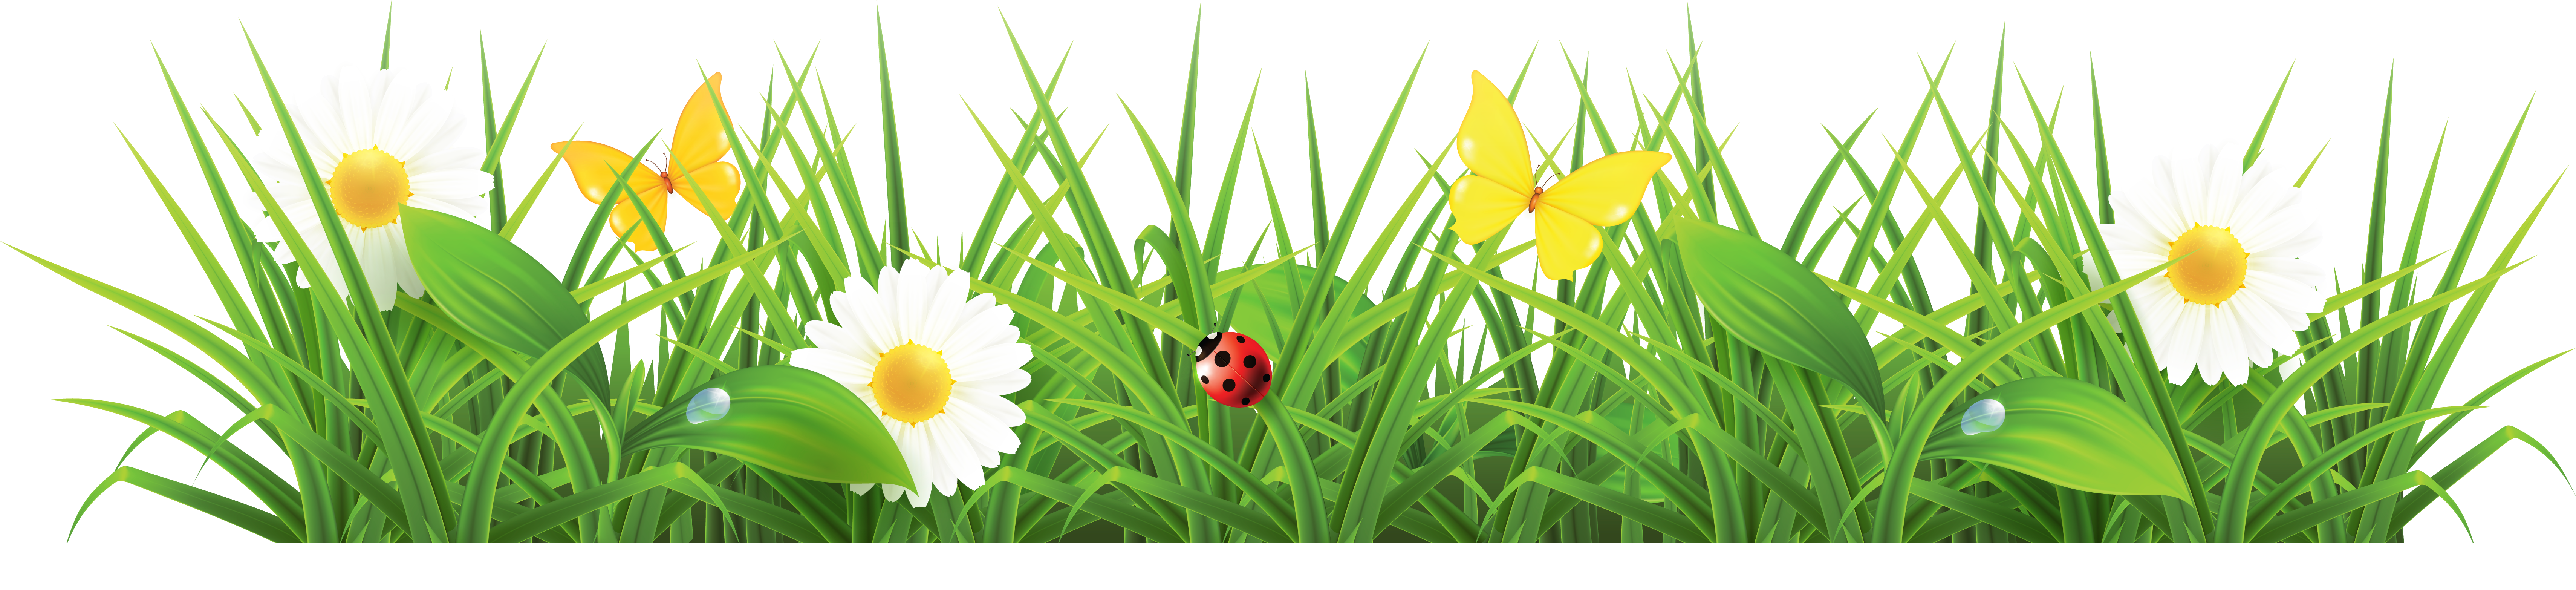 Grass clipart images free